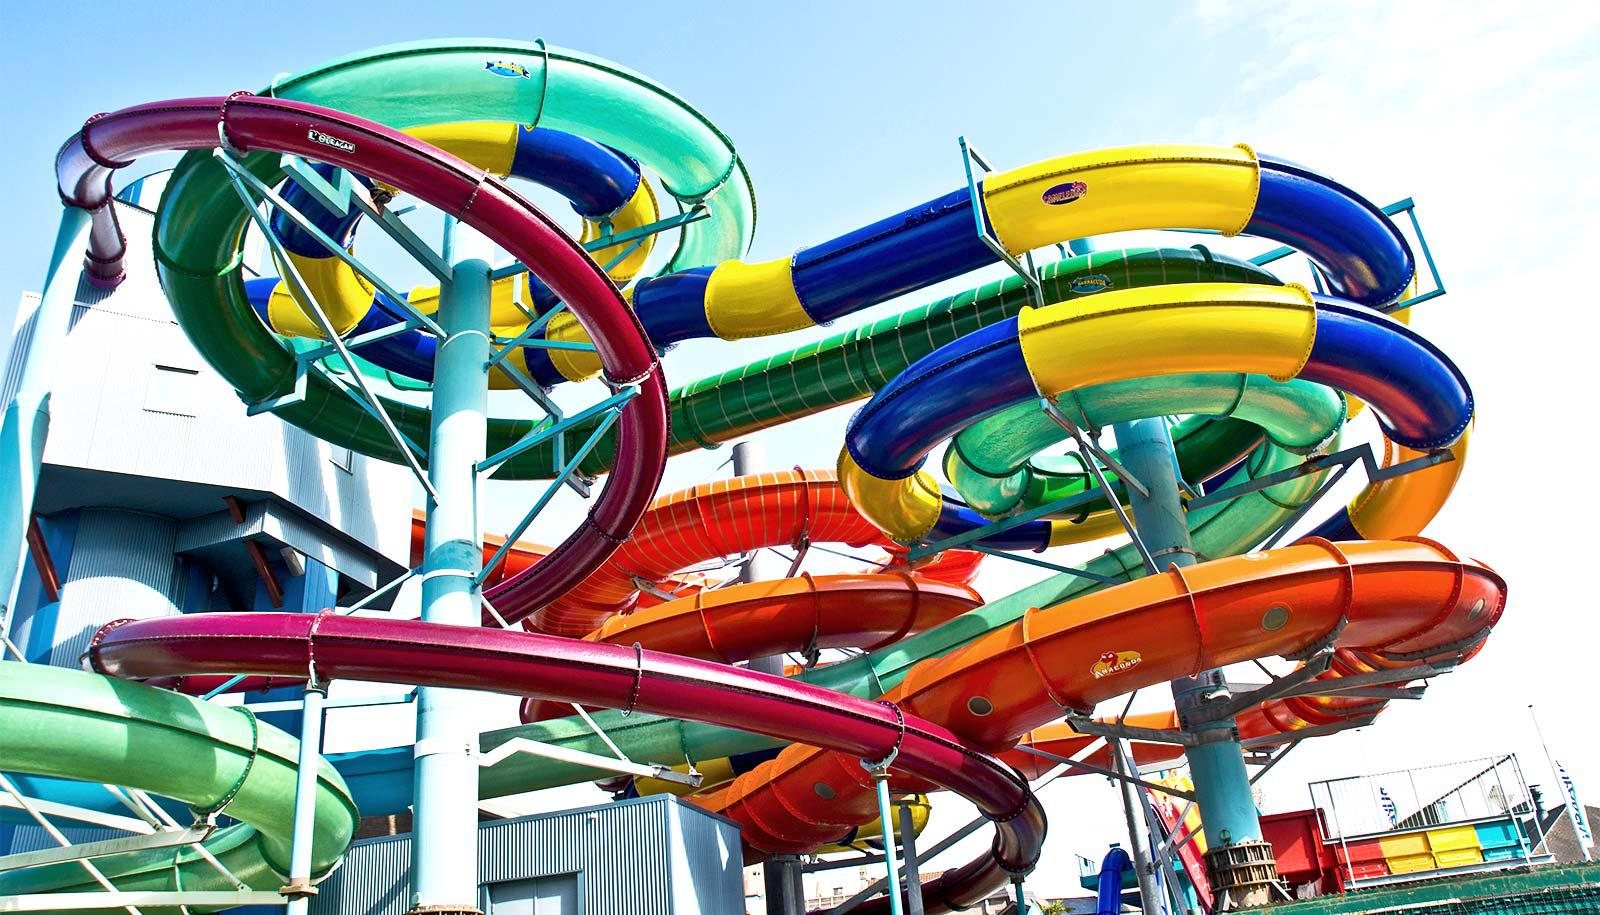 water slide with segments